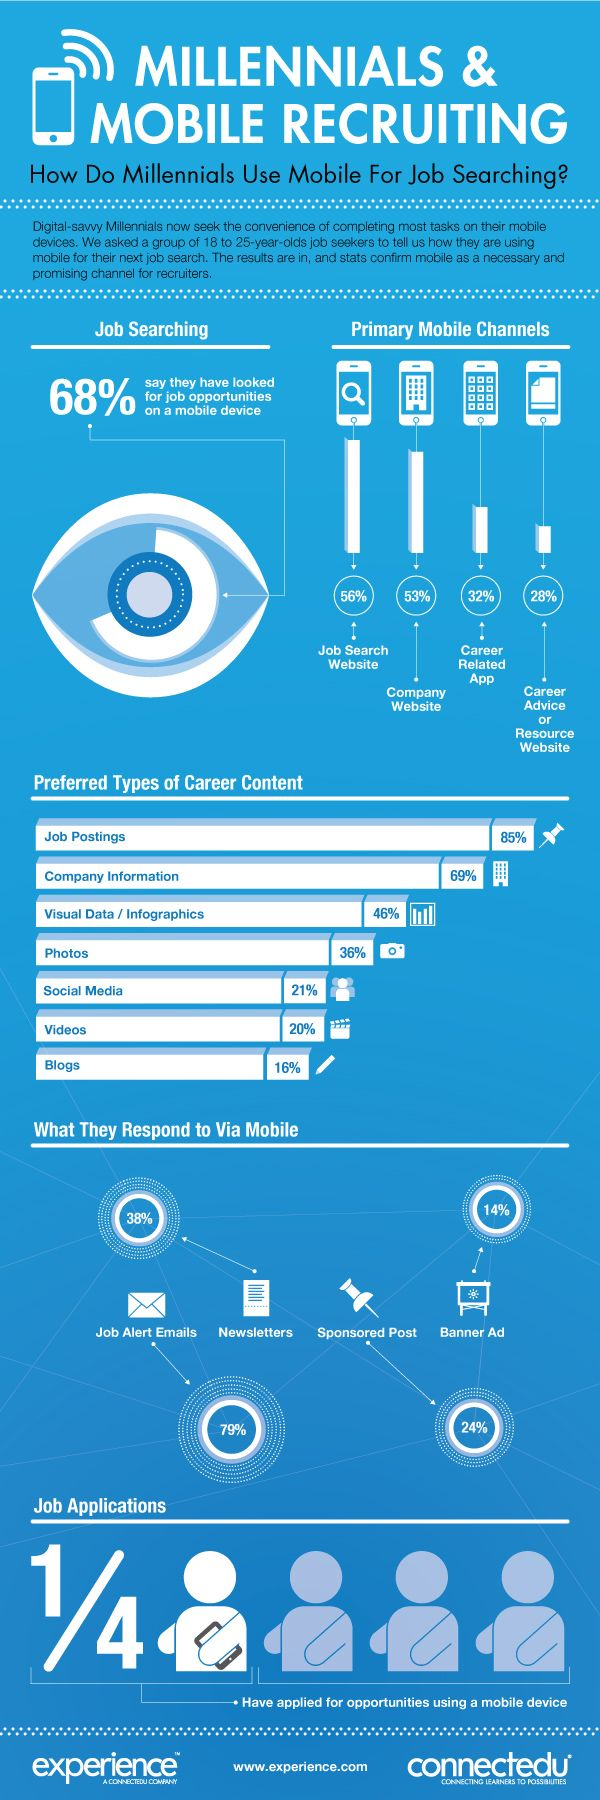 Smartphone Job Search: Millennials Going #Mobile to Find Their Next Gig [#Infographic]